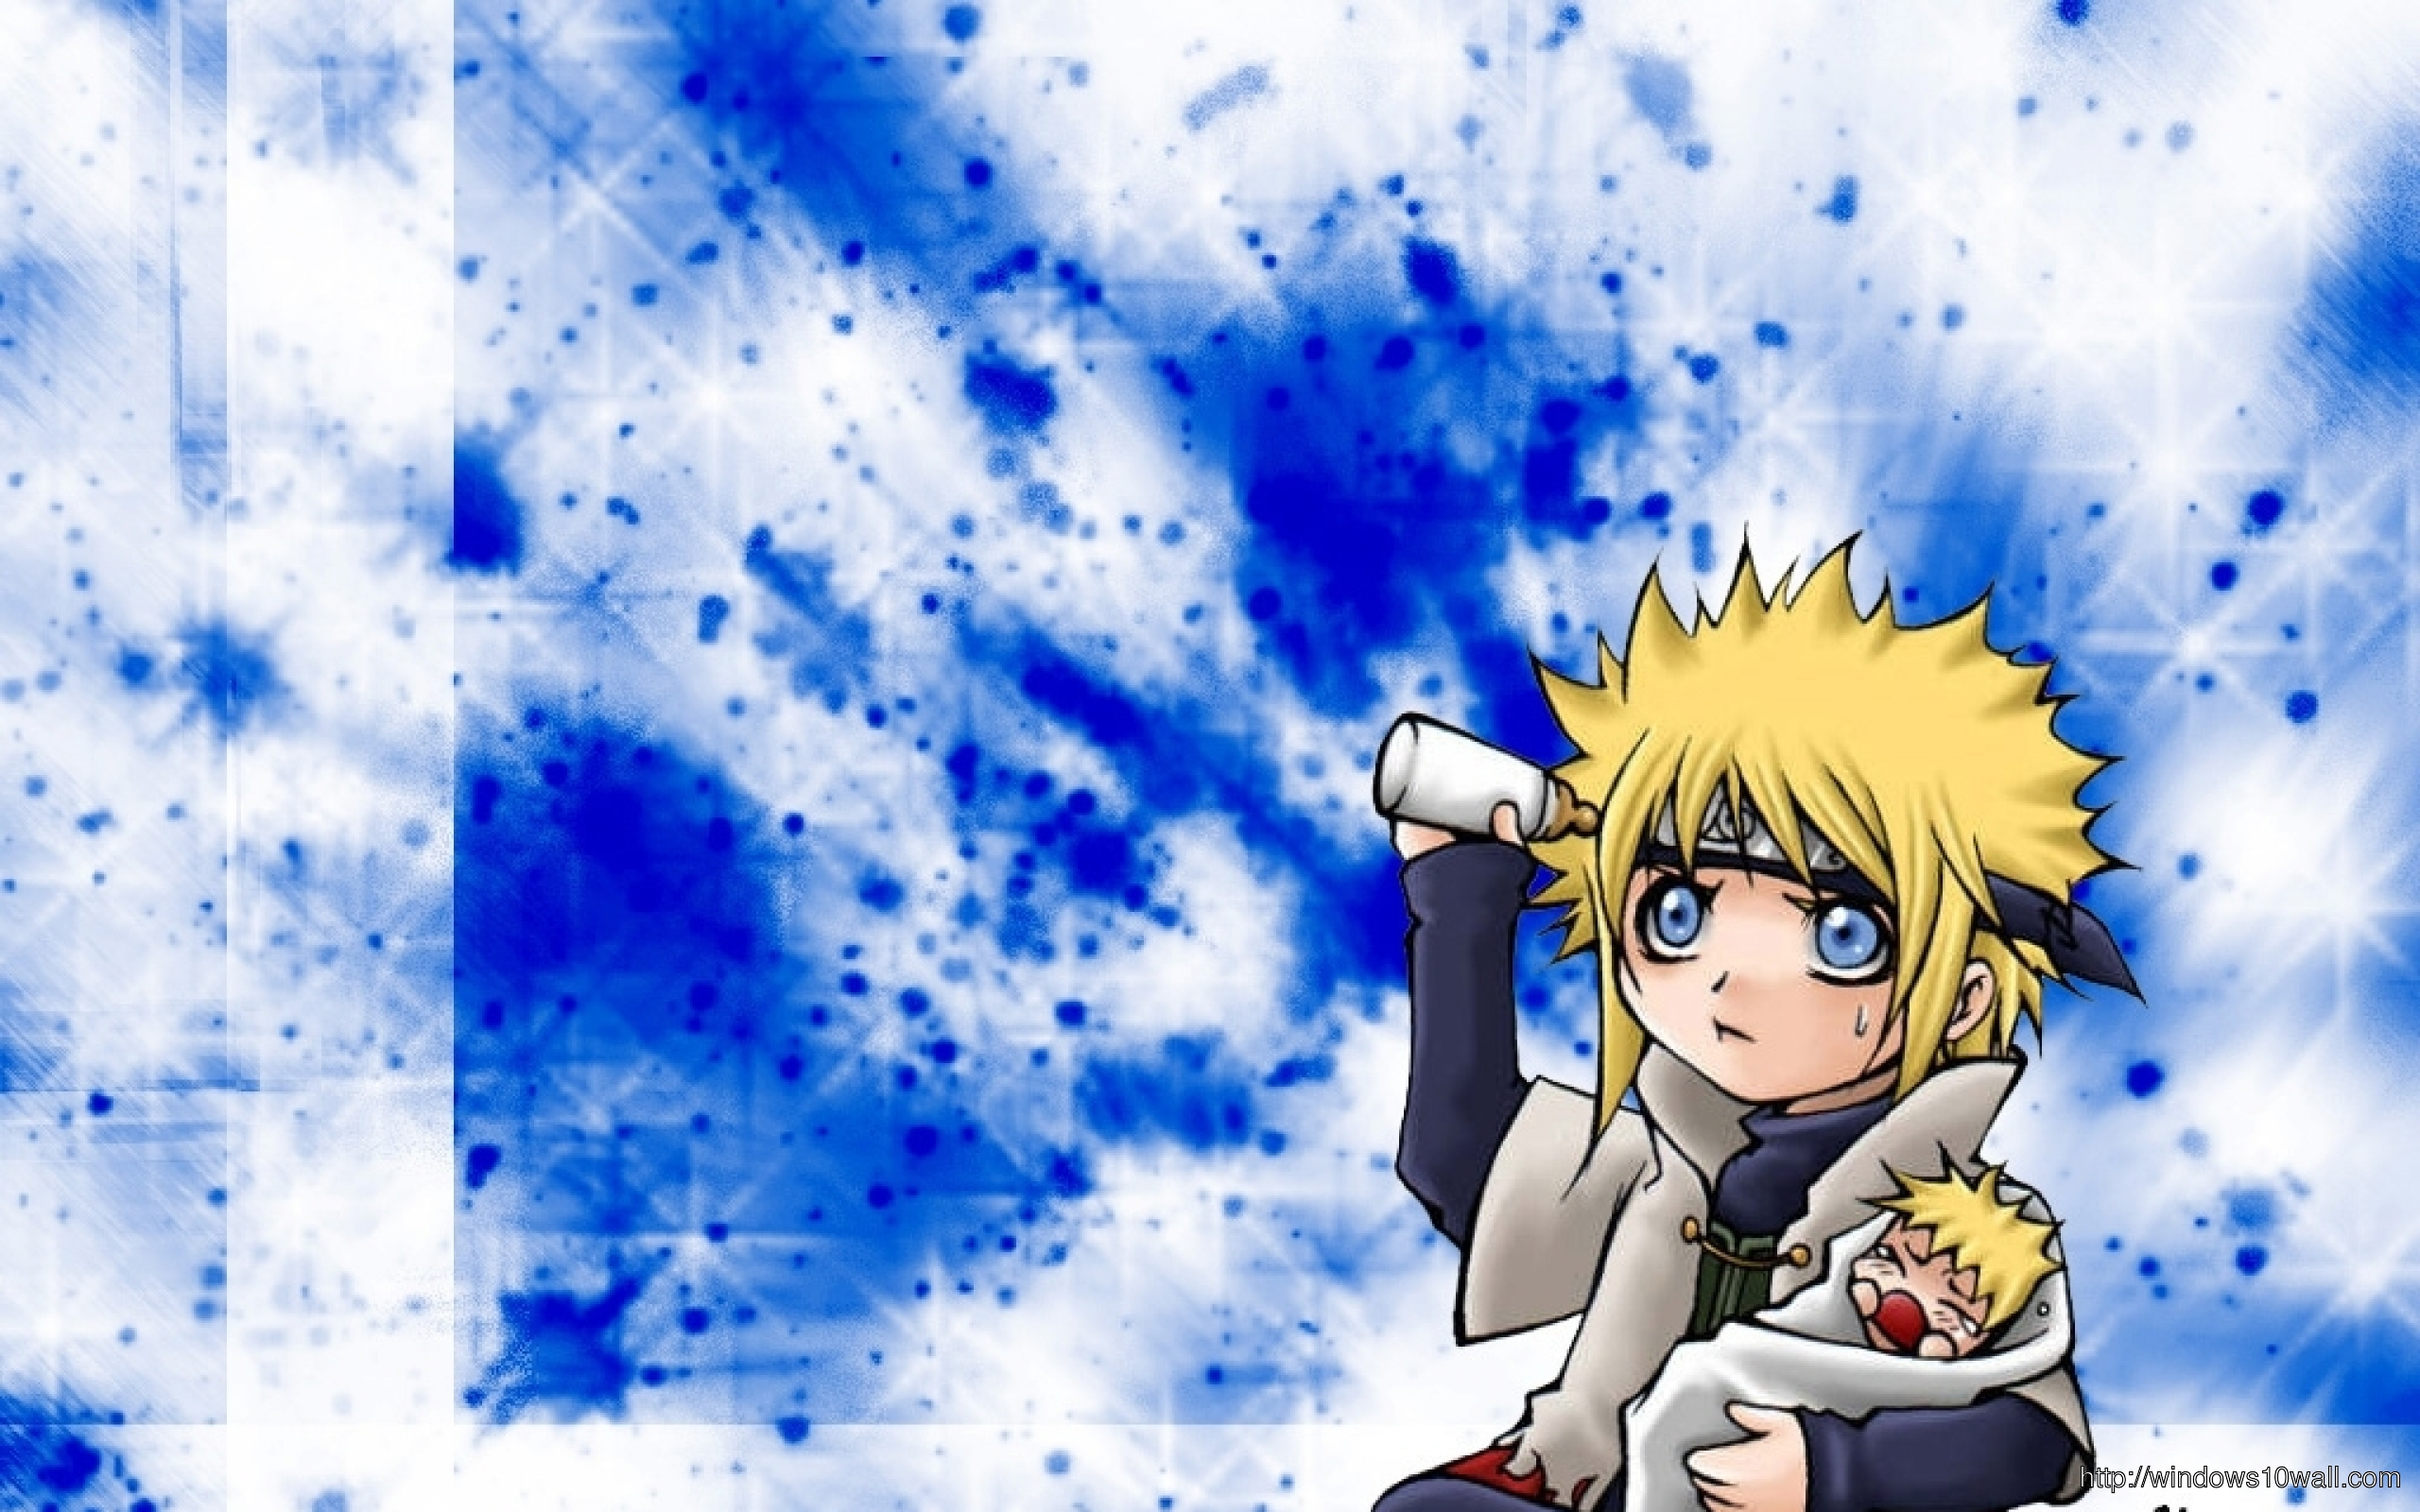 Sweet Cute Baby Girl Wallpaper Naruto Page 3 Of 10 Windows 10 Wallpapers